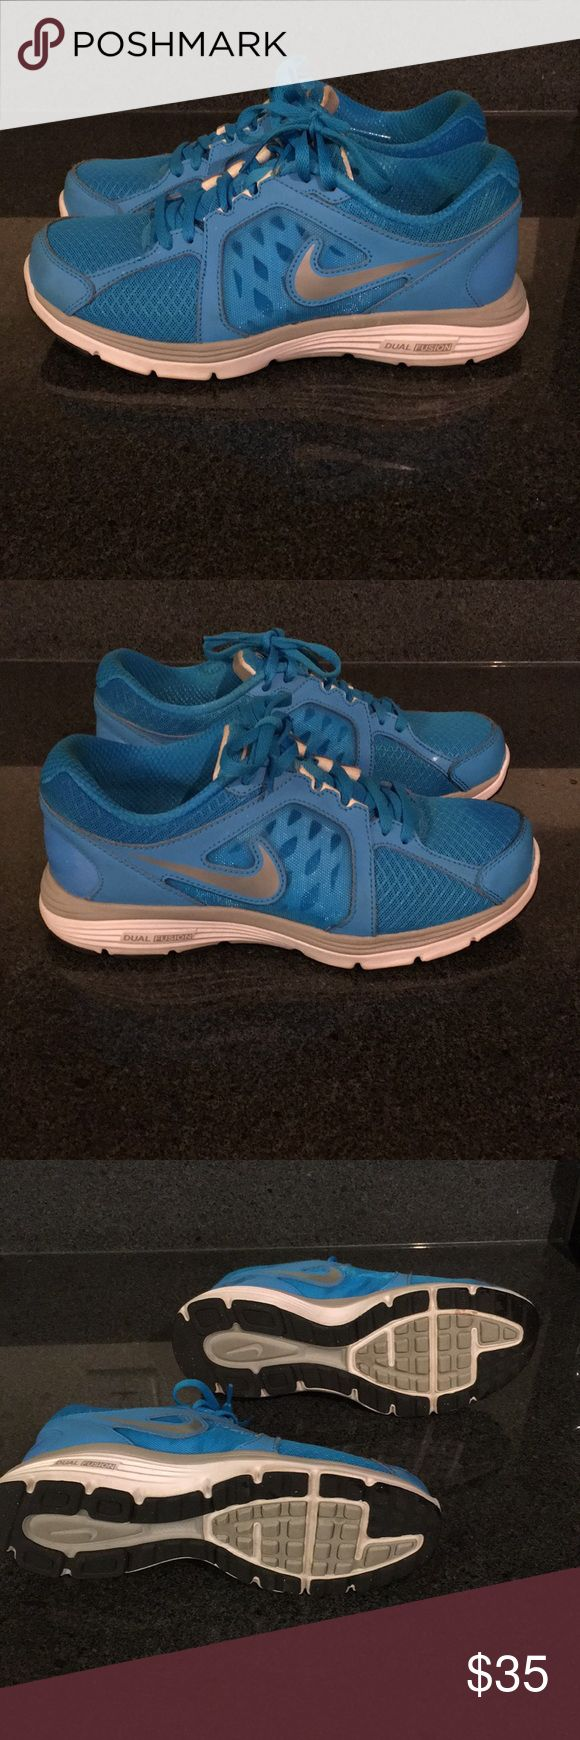 Nike Dual Fusion blue running shoe Running shoes in excellent condition. Nike Shoes Athletic Shoes